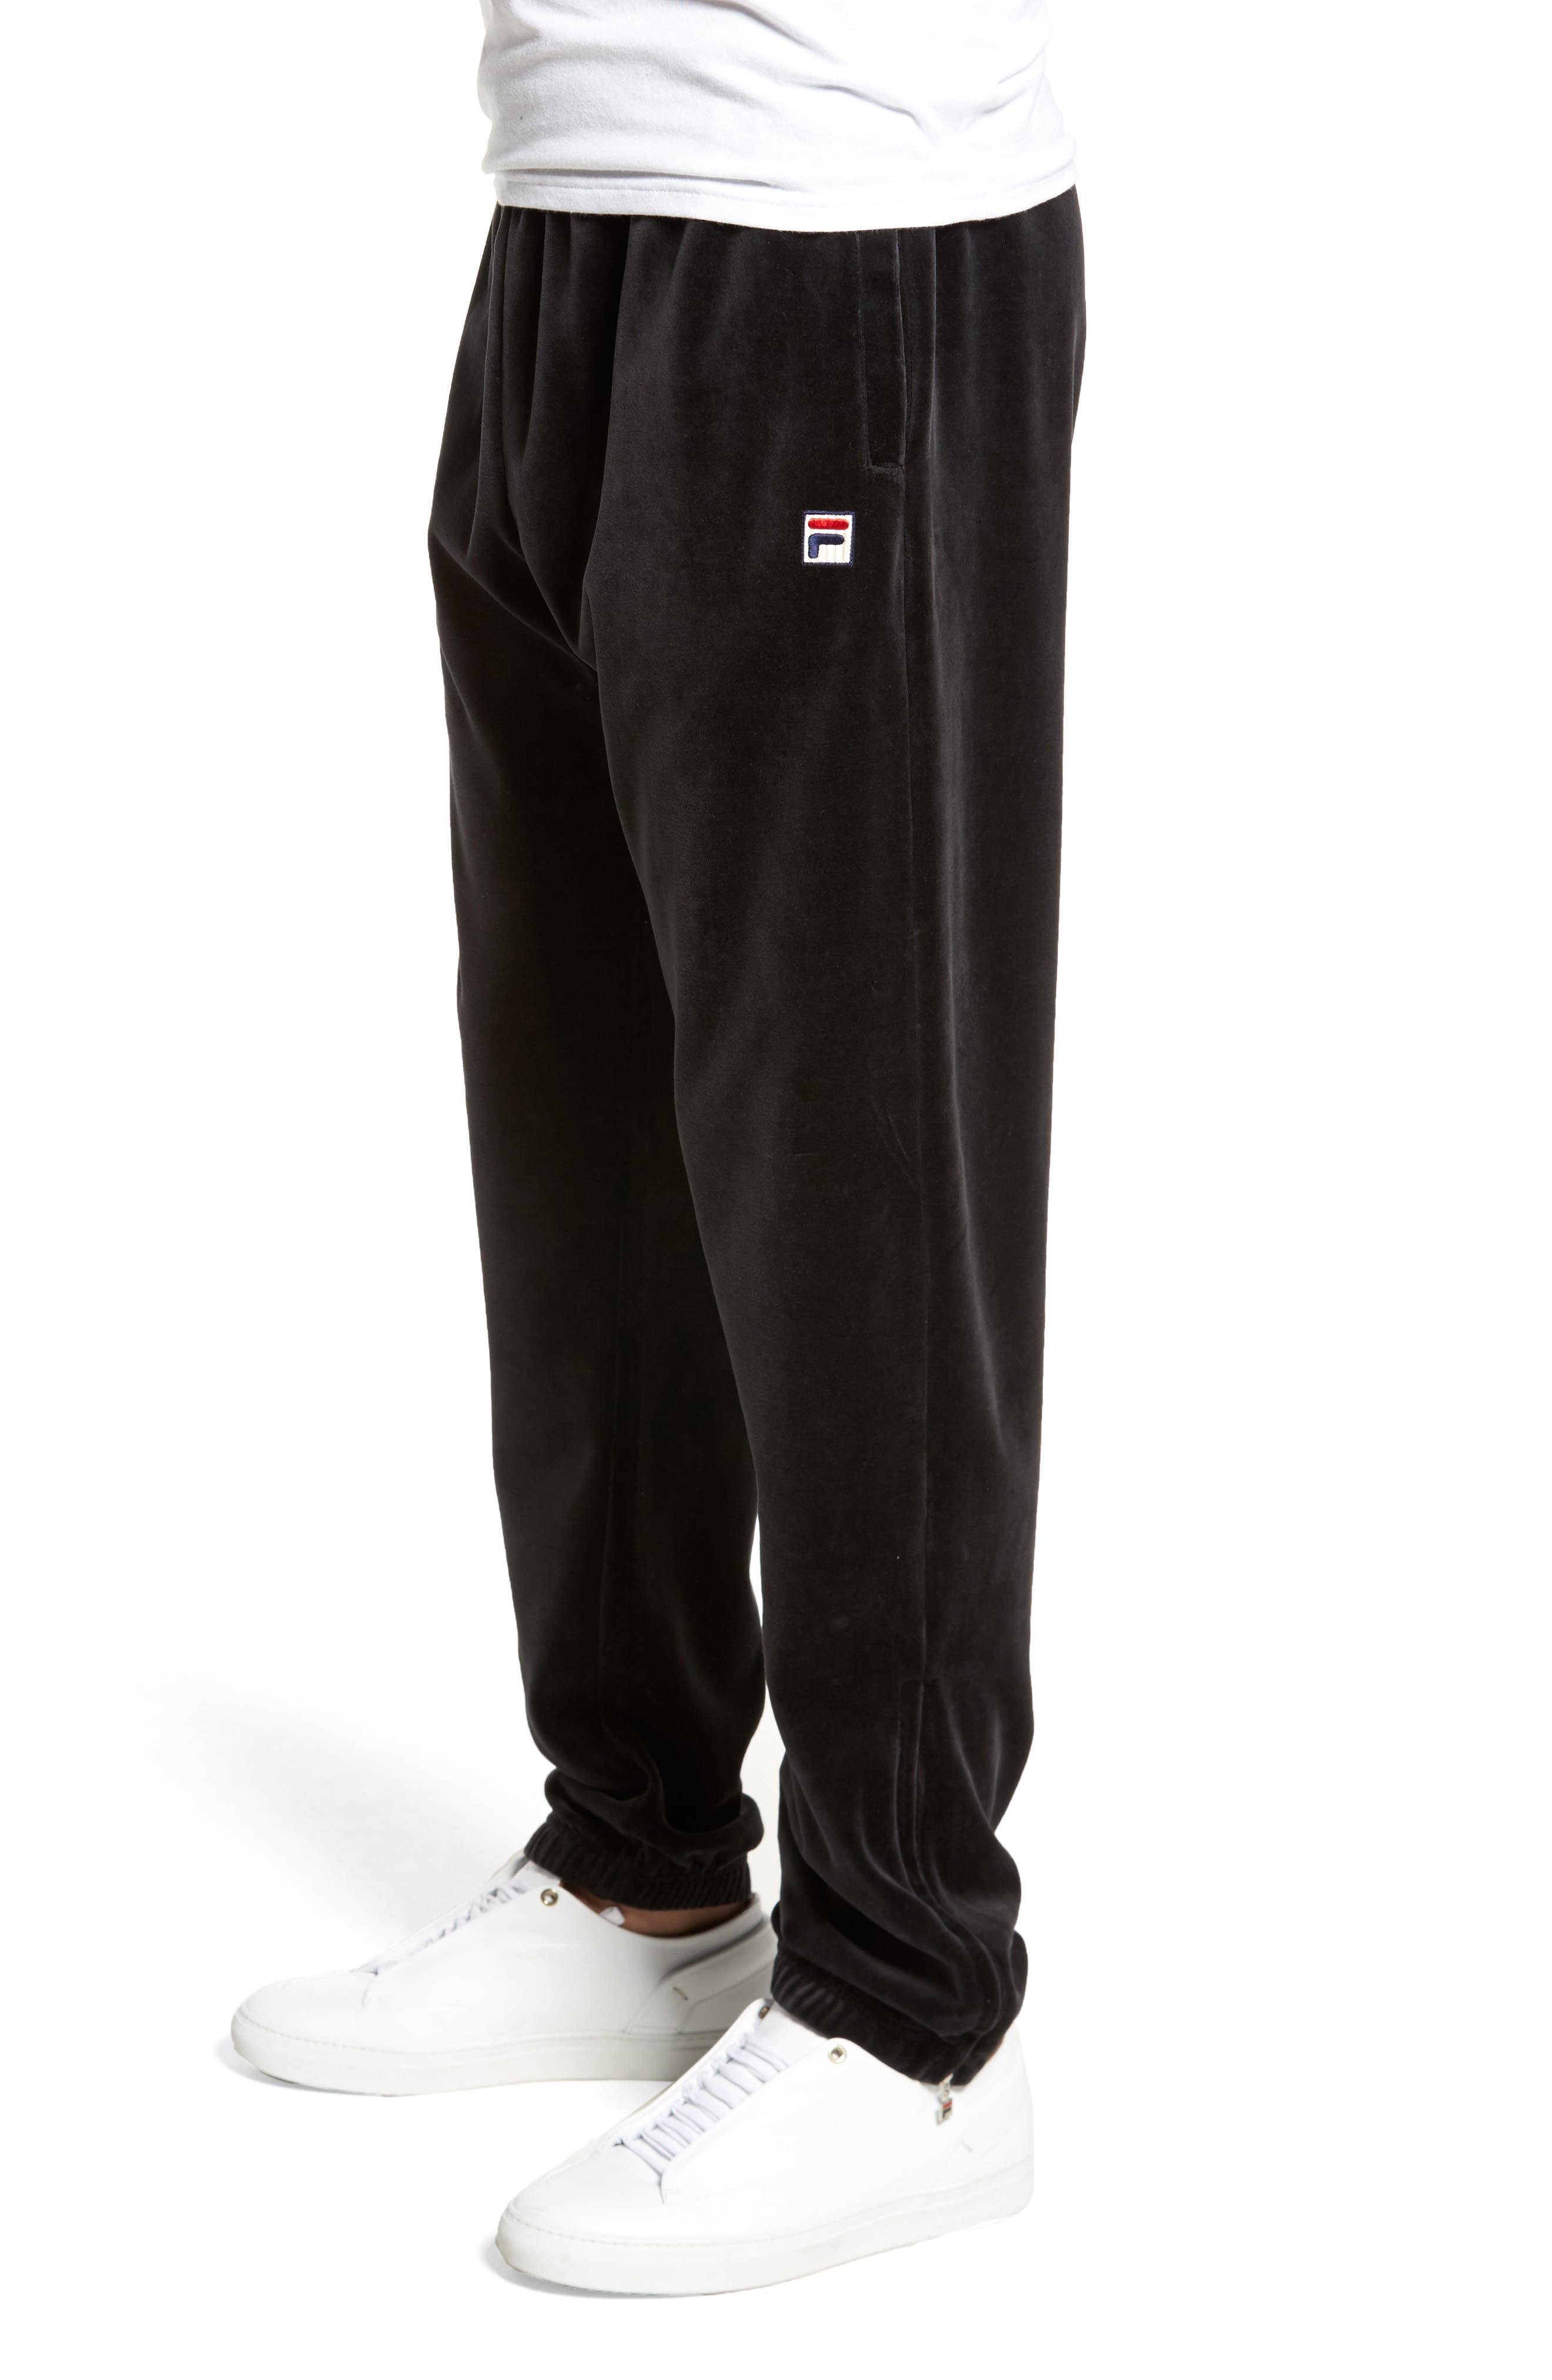 USA Slim Fit Velour Track Pants,                             Alternate thumbnail 3, color,                             001